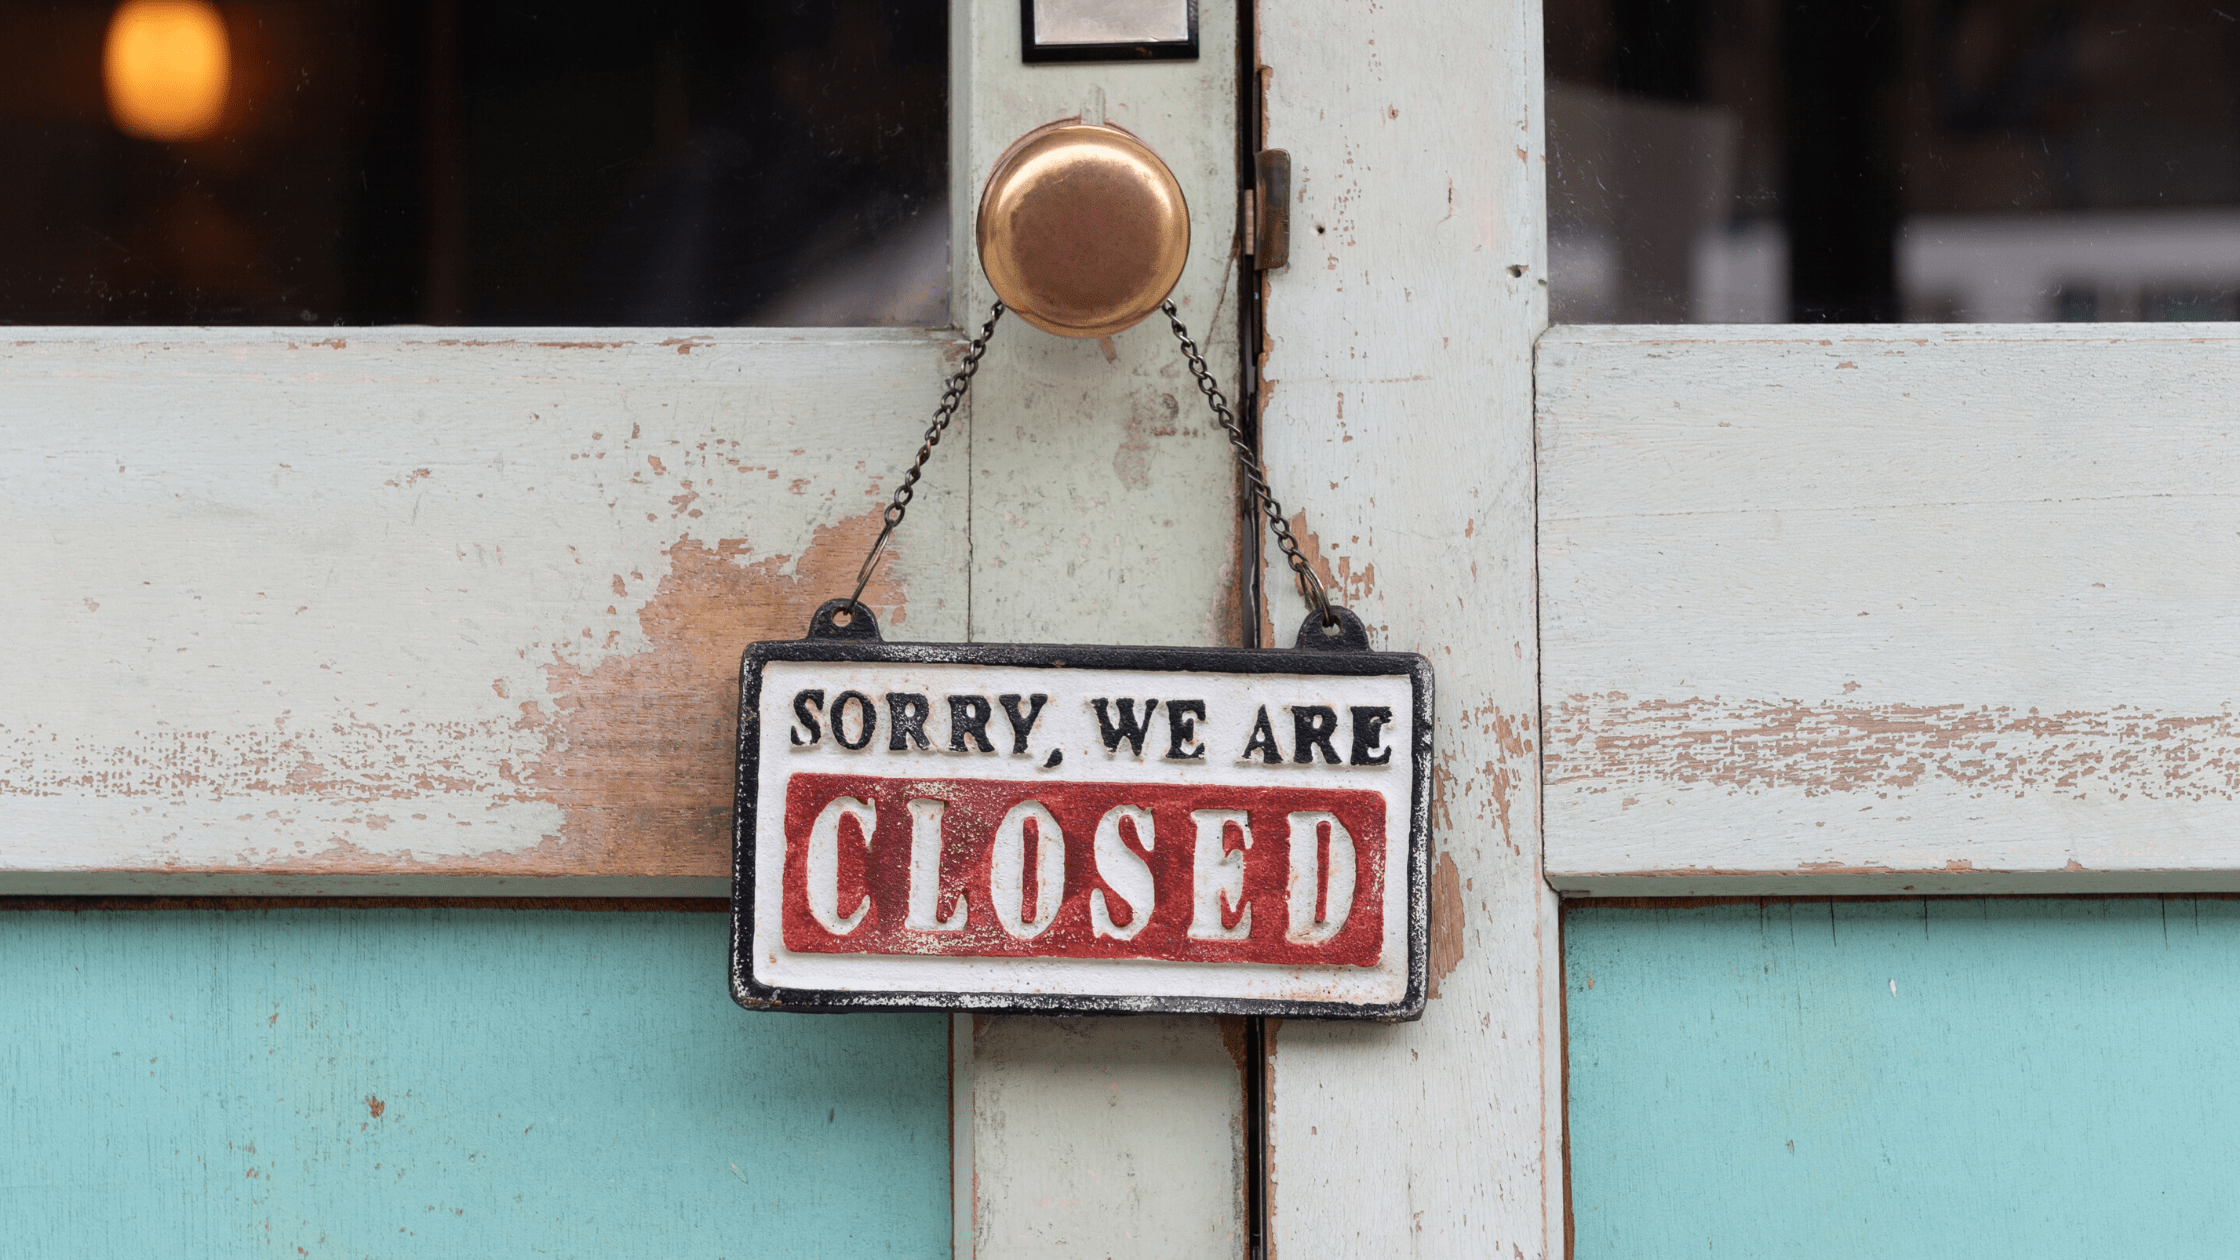 The graceful exit: How to shutter a business when the pandemic forces closure